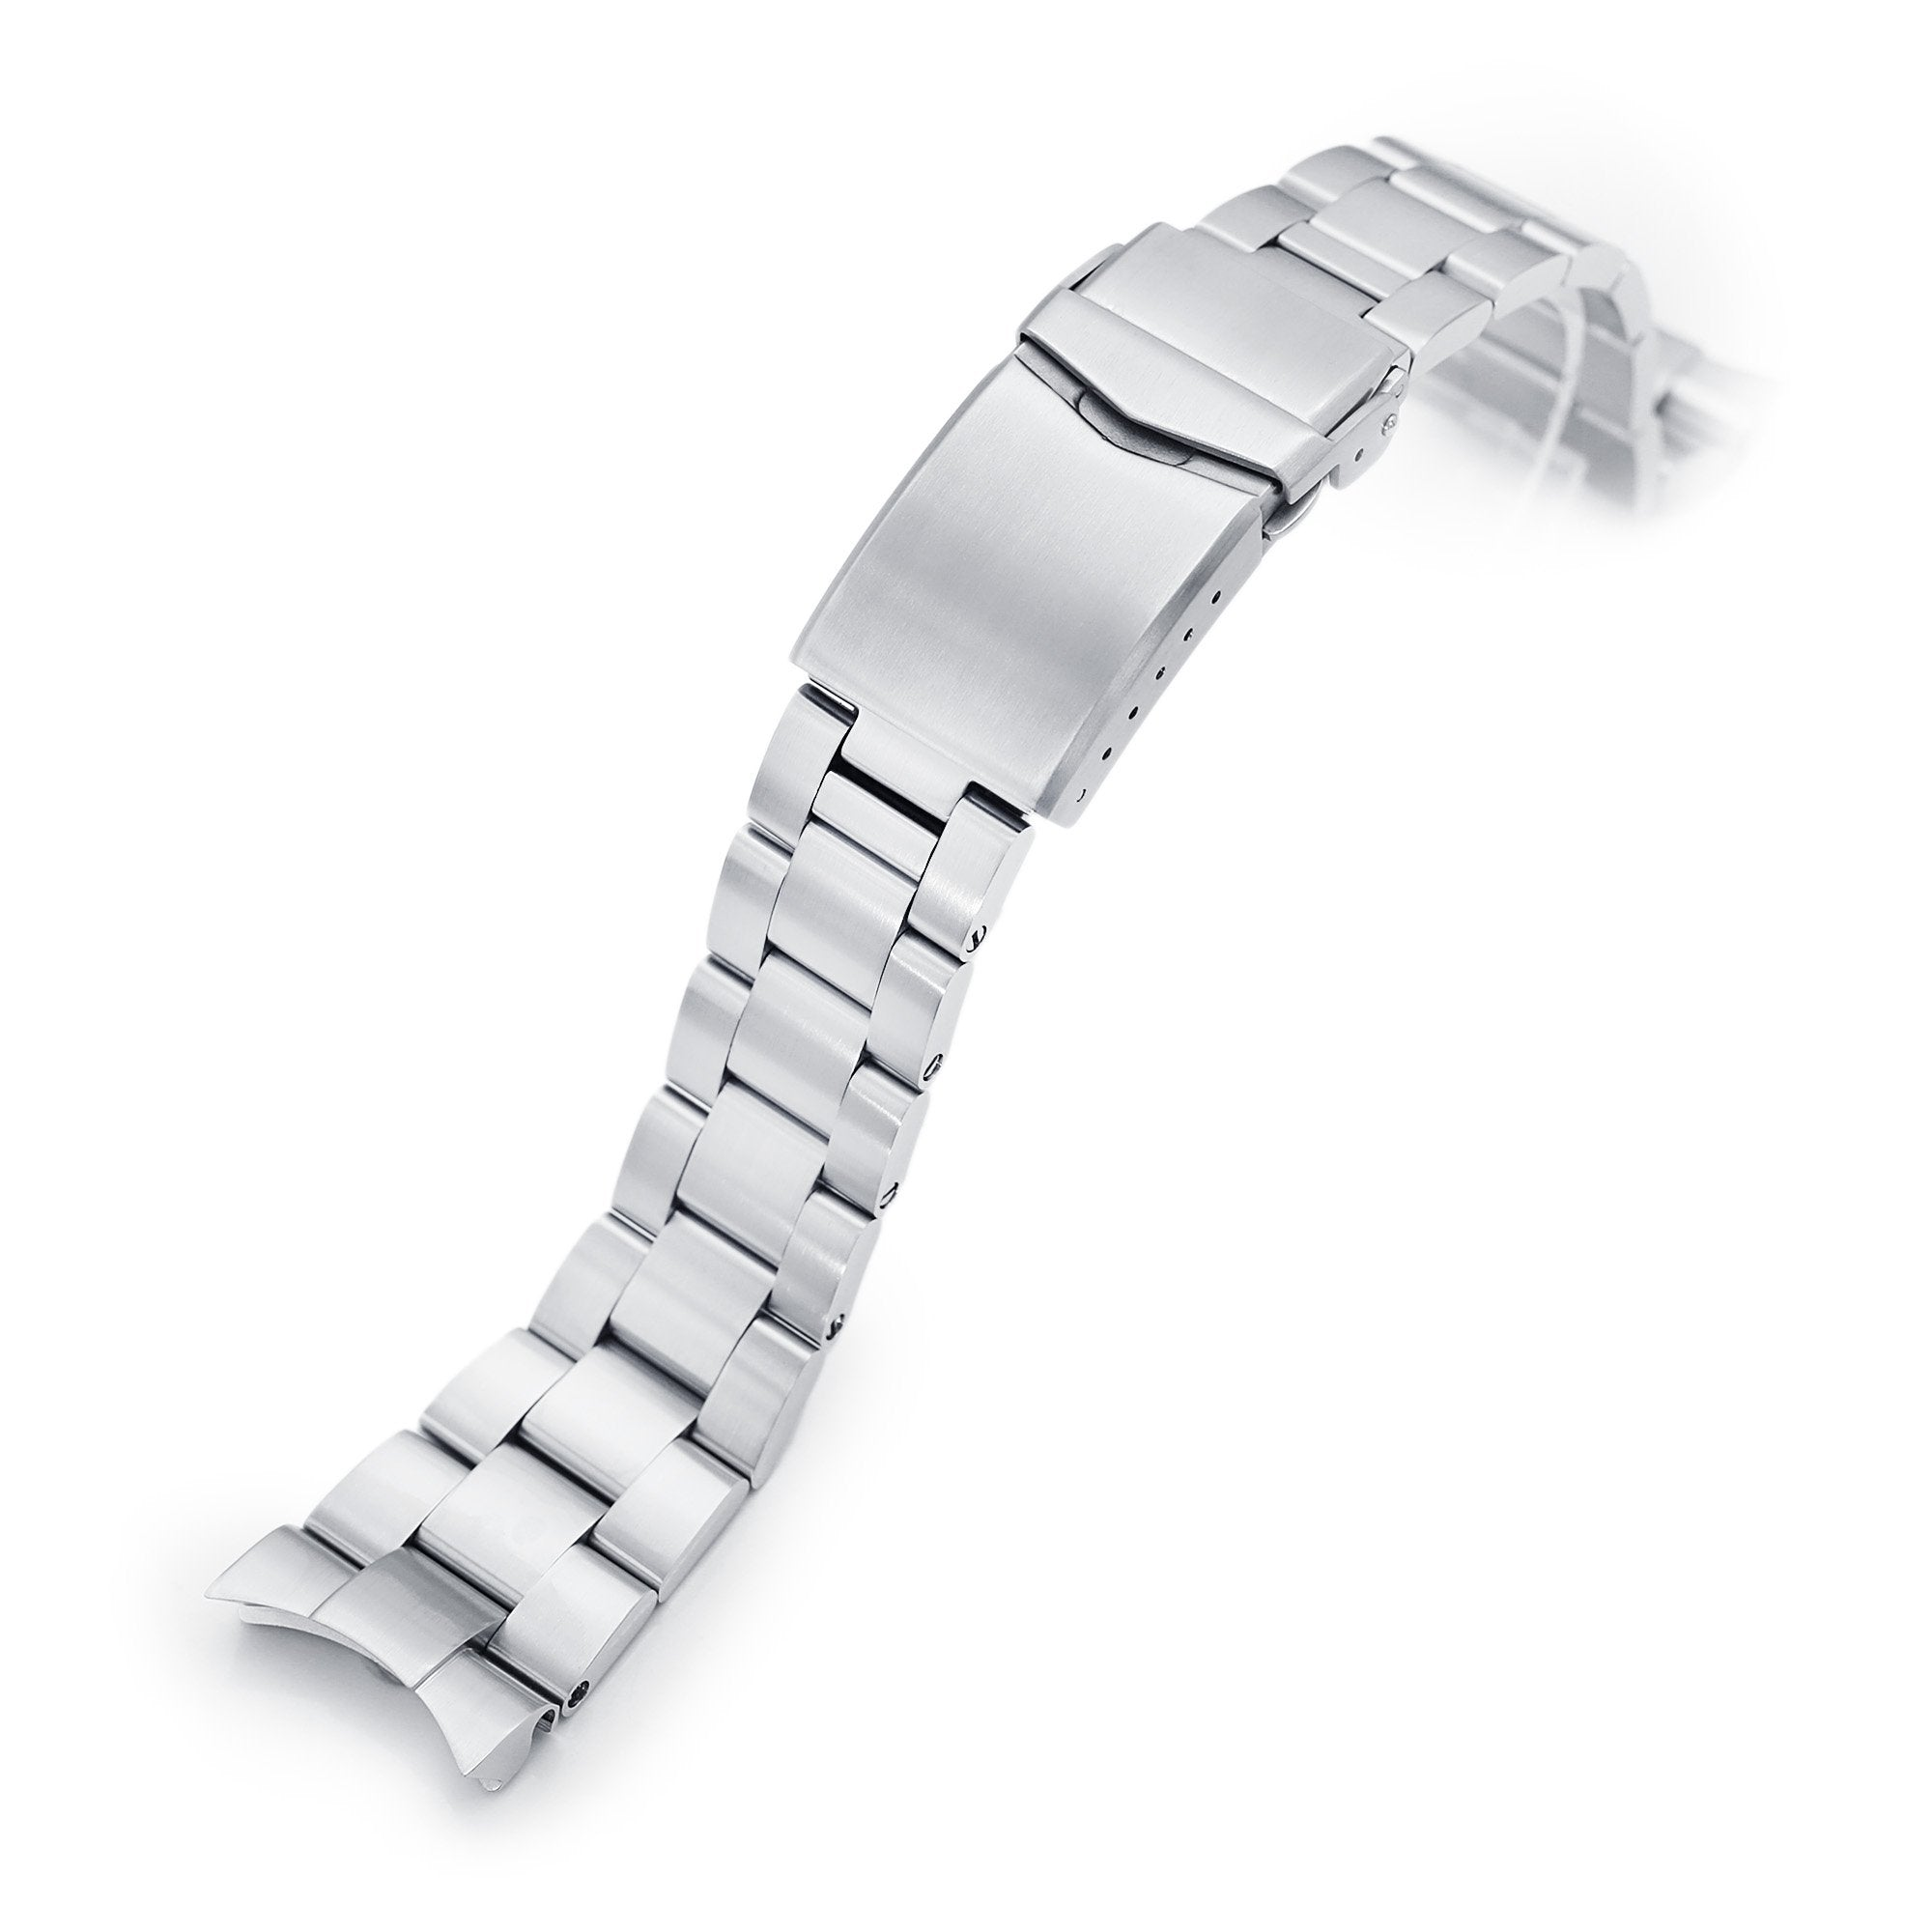 22mm Super-O Boyer 316L Stainless Steel Watch Bracelet for Orient Kamasu Brushed V-Clasp Strapcode Watch Bands